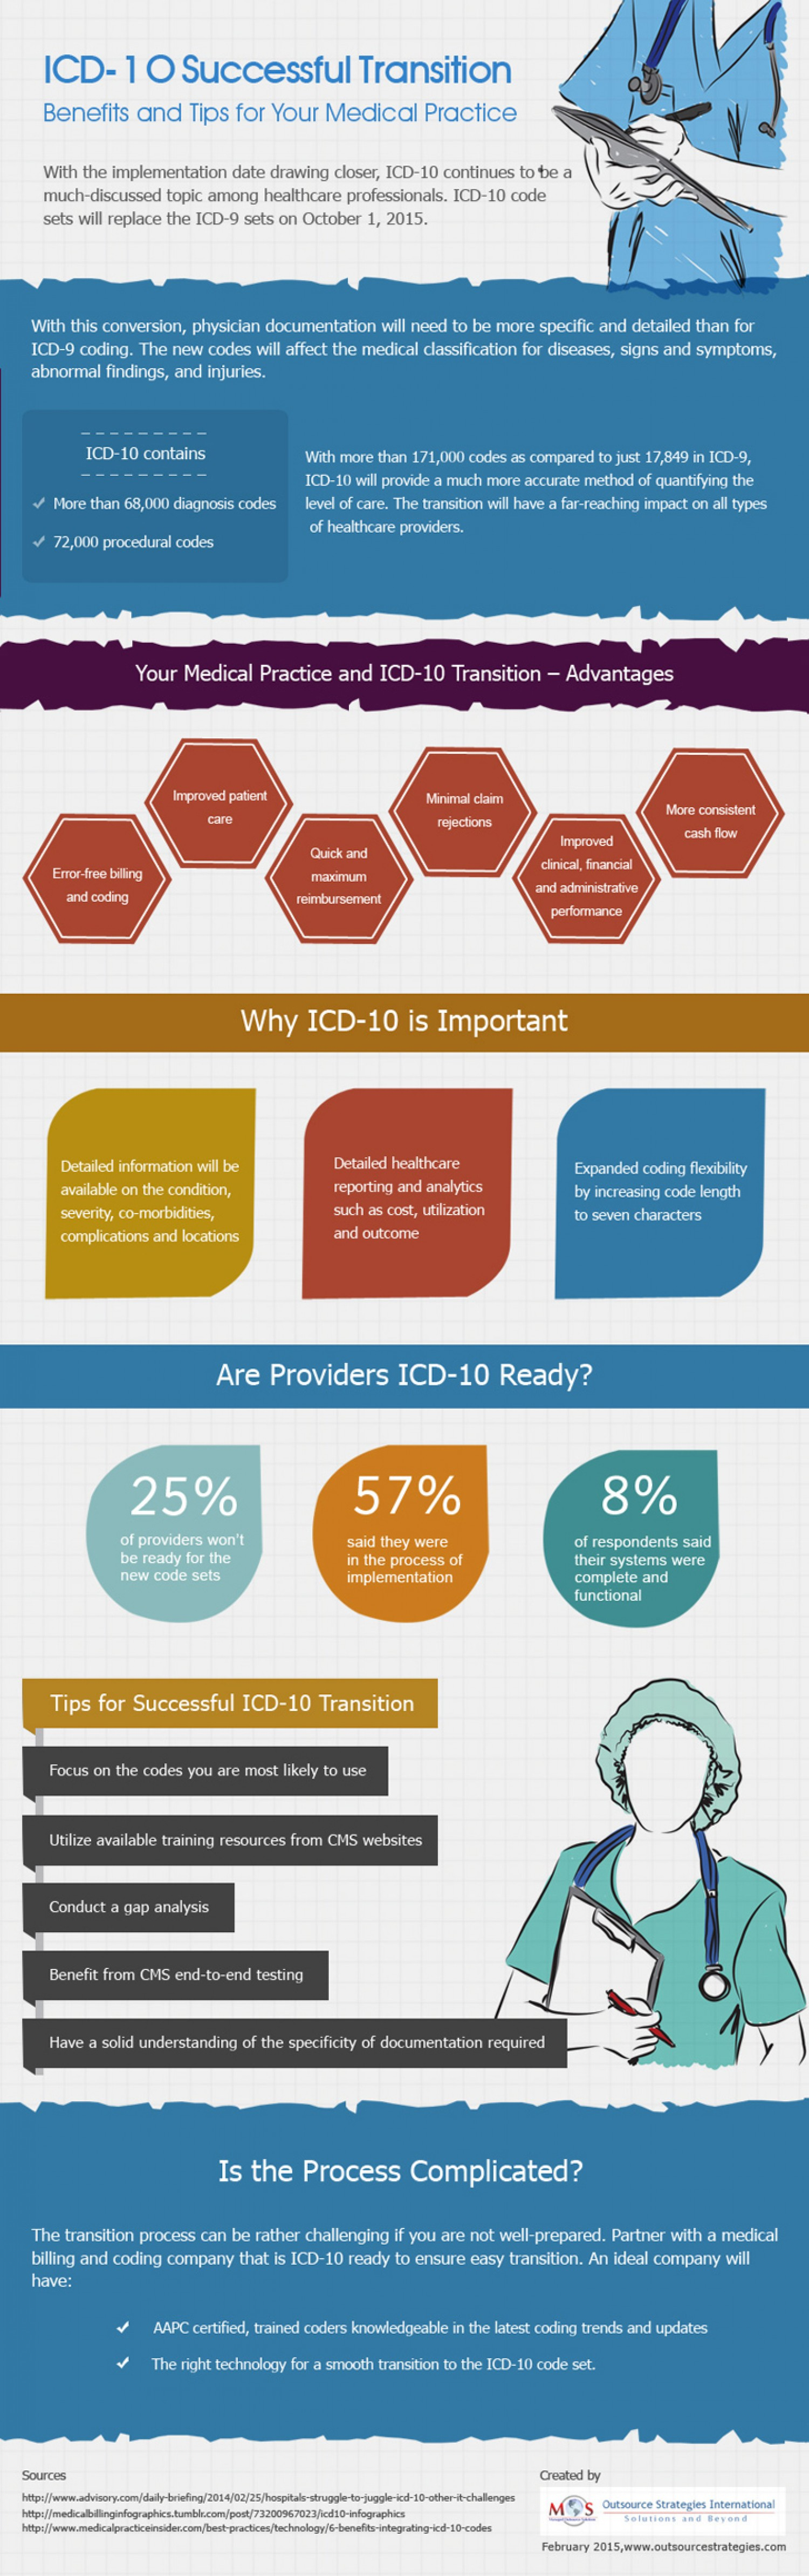 Icd-10 implementation date